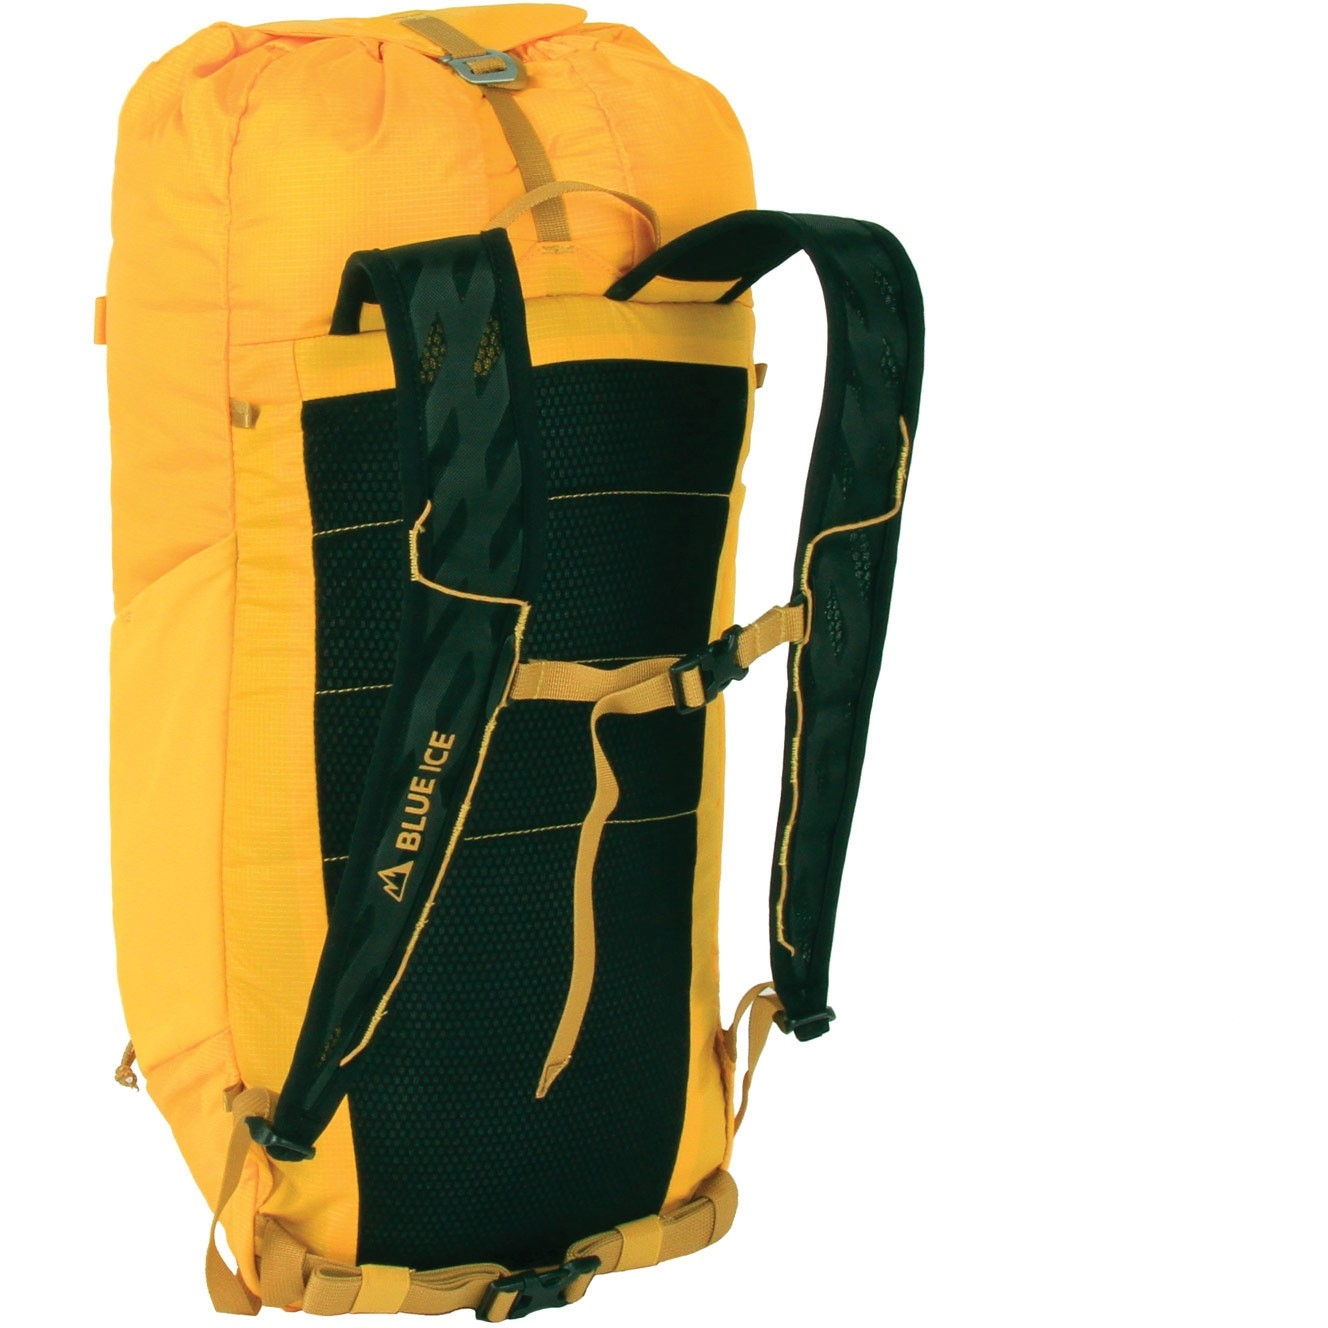 Blue Ice Dragonfly 25L Rucksack - Spectra Yellow - back